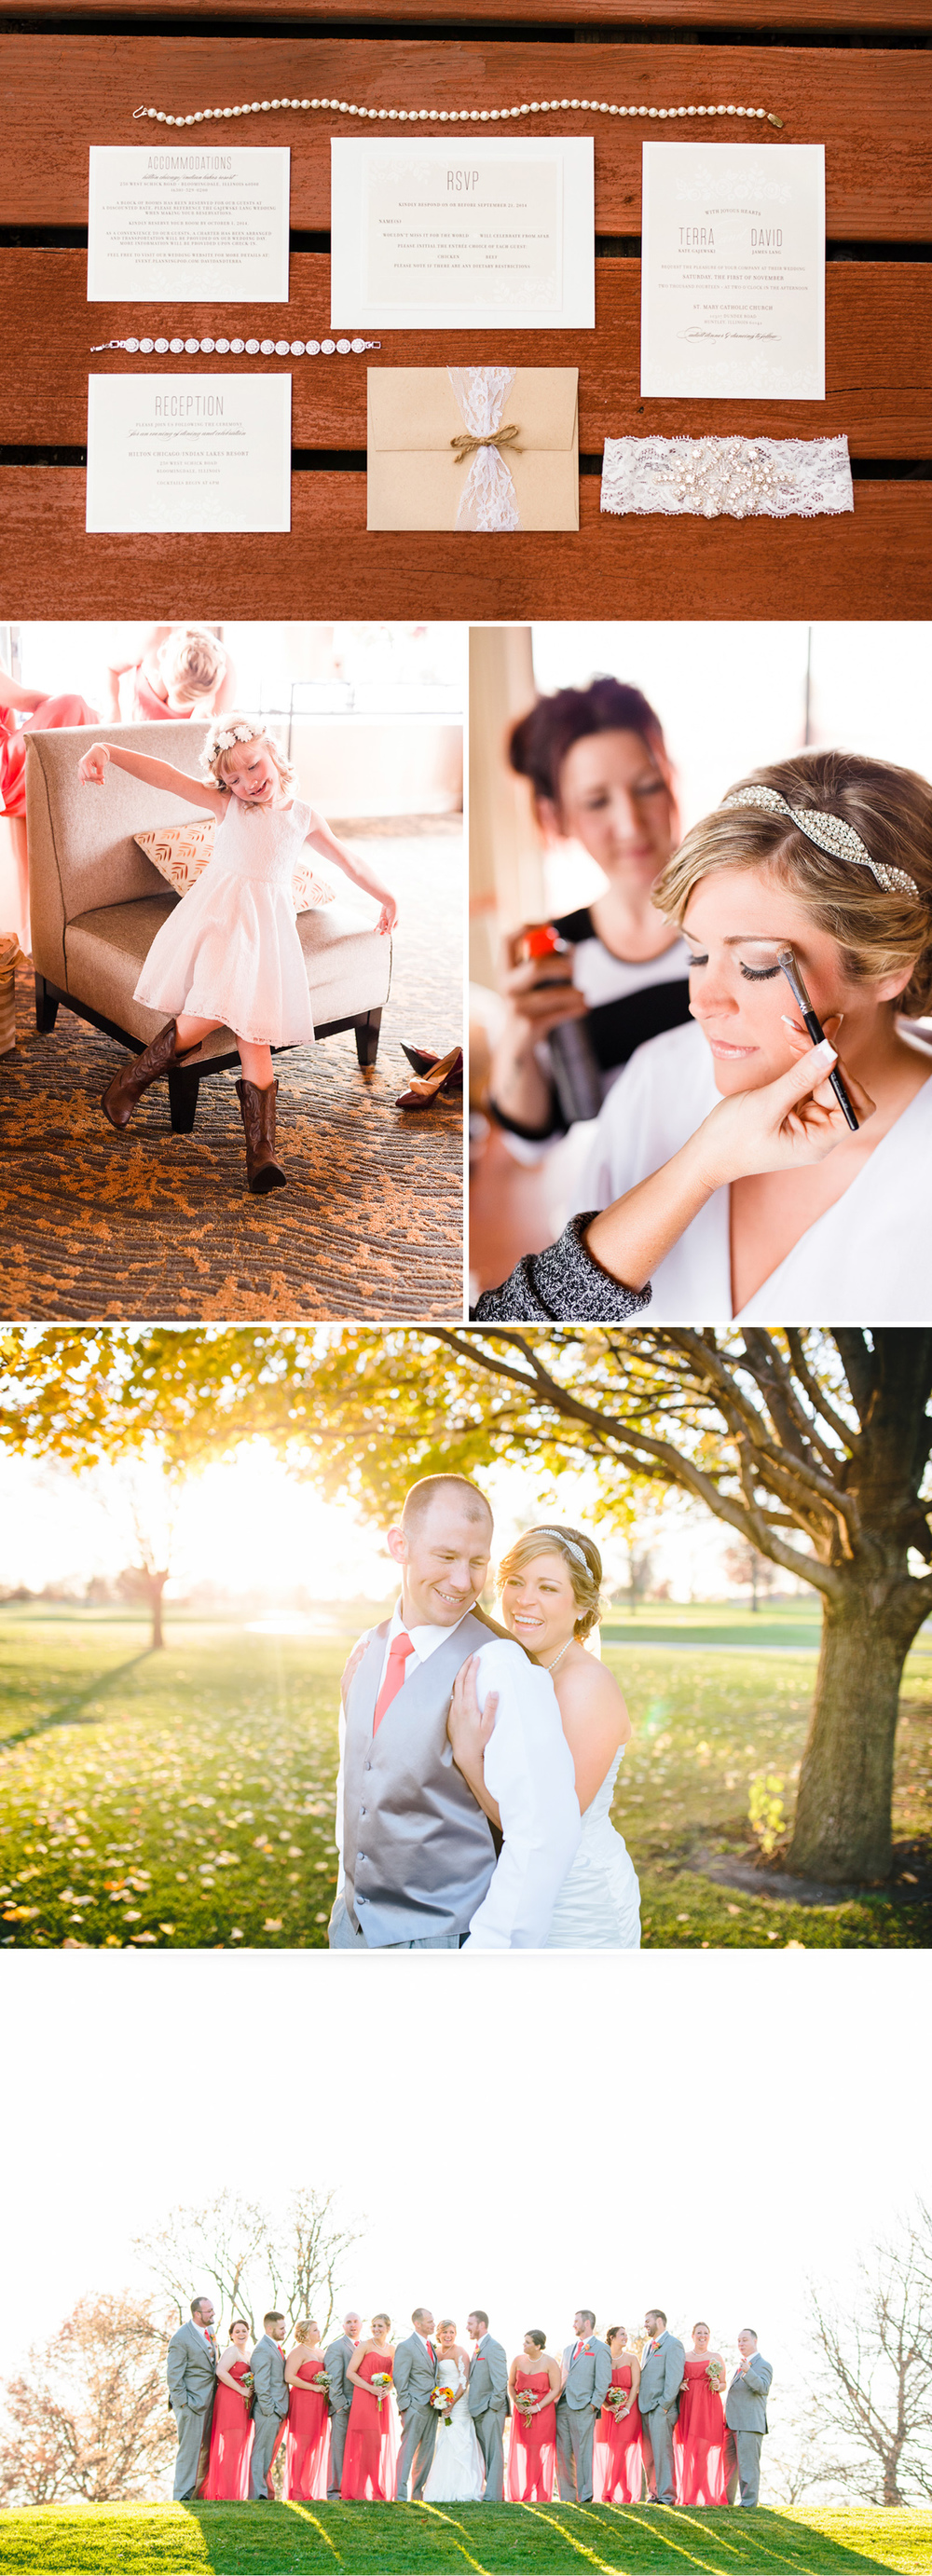 chicago-fine-art-wedding-photography-lang